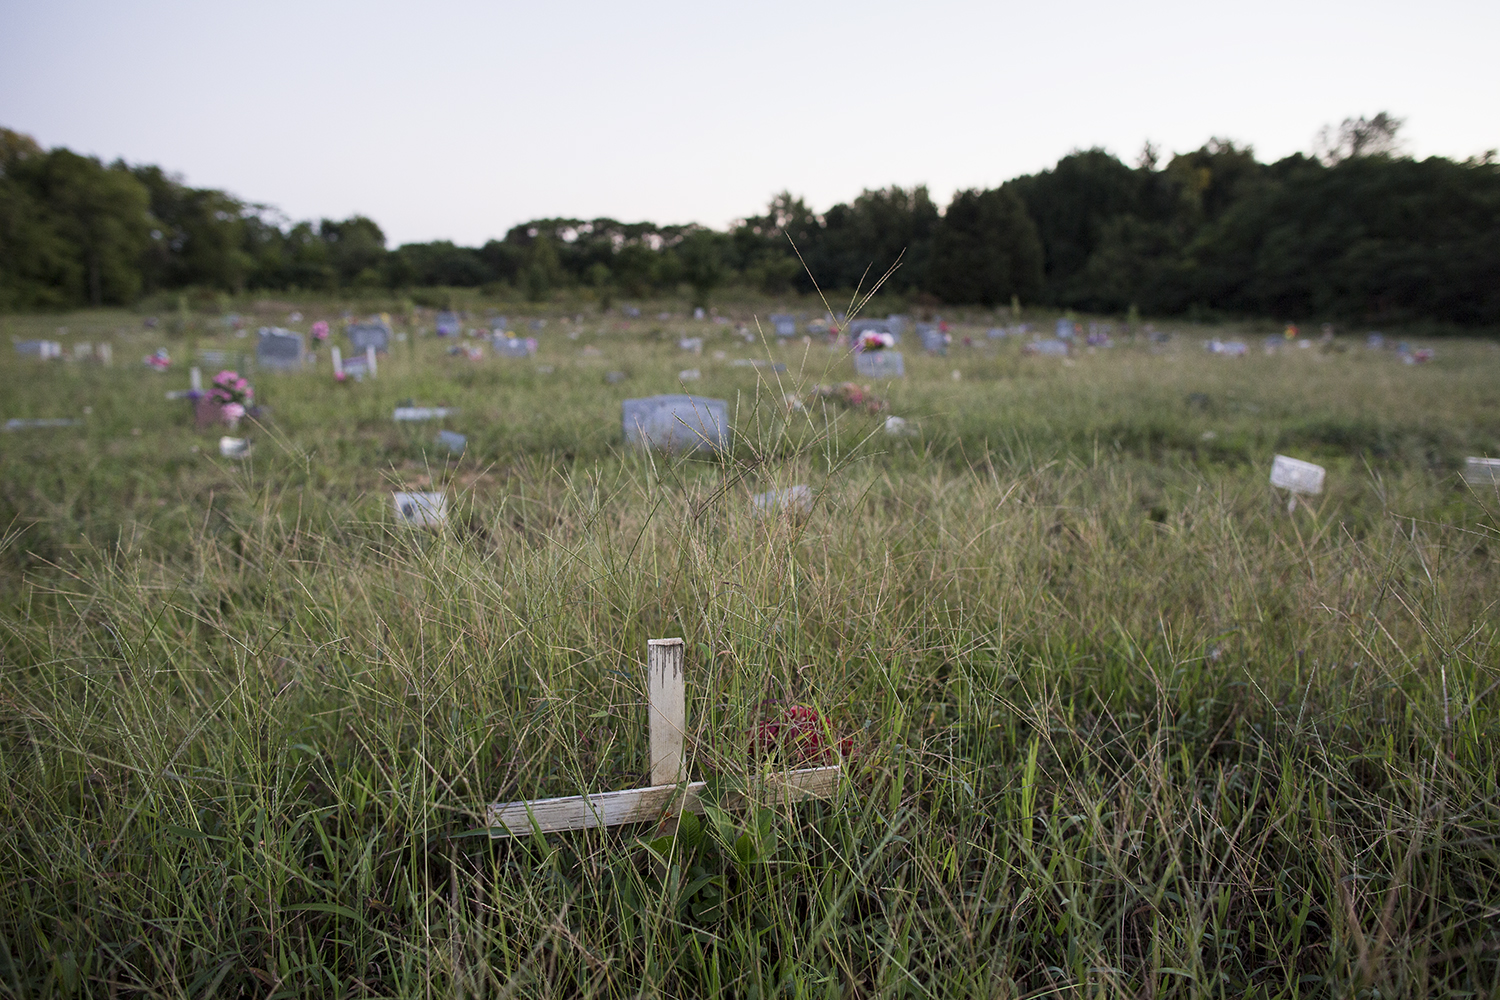 Graves in center section, still active for burials, Evergreen Cemetery, Richmond, VA, September 14, 2015